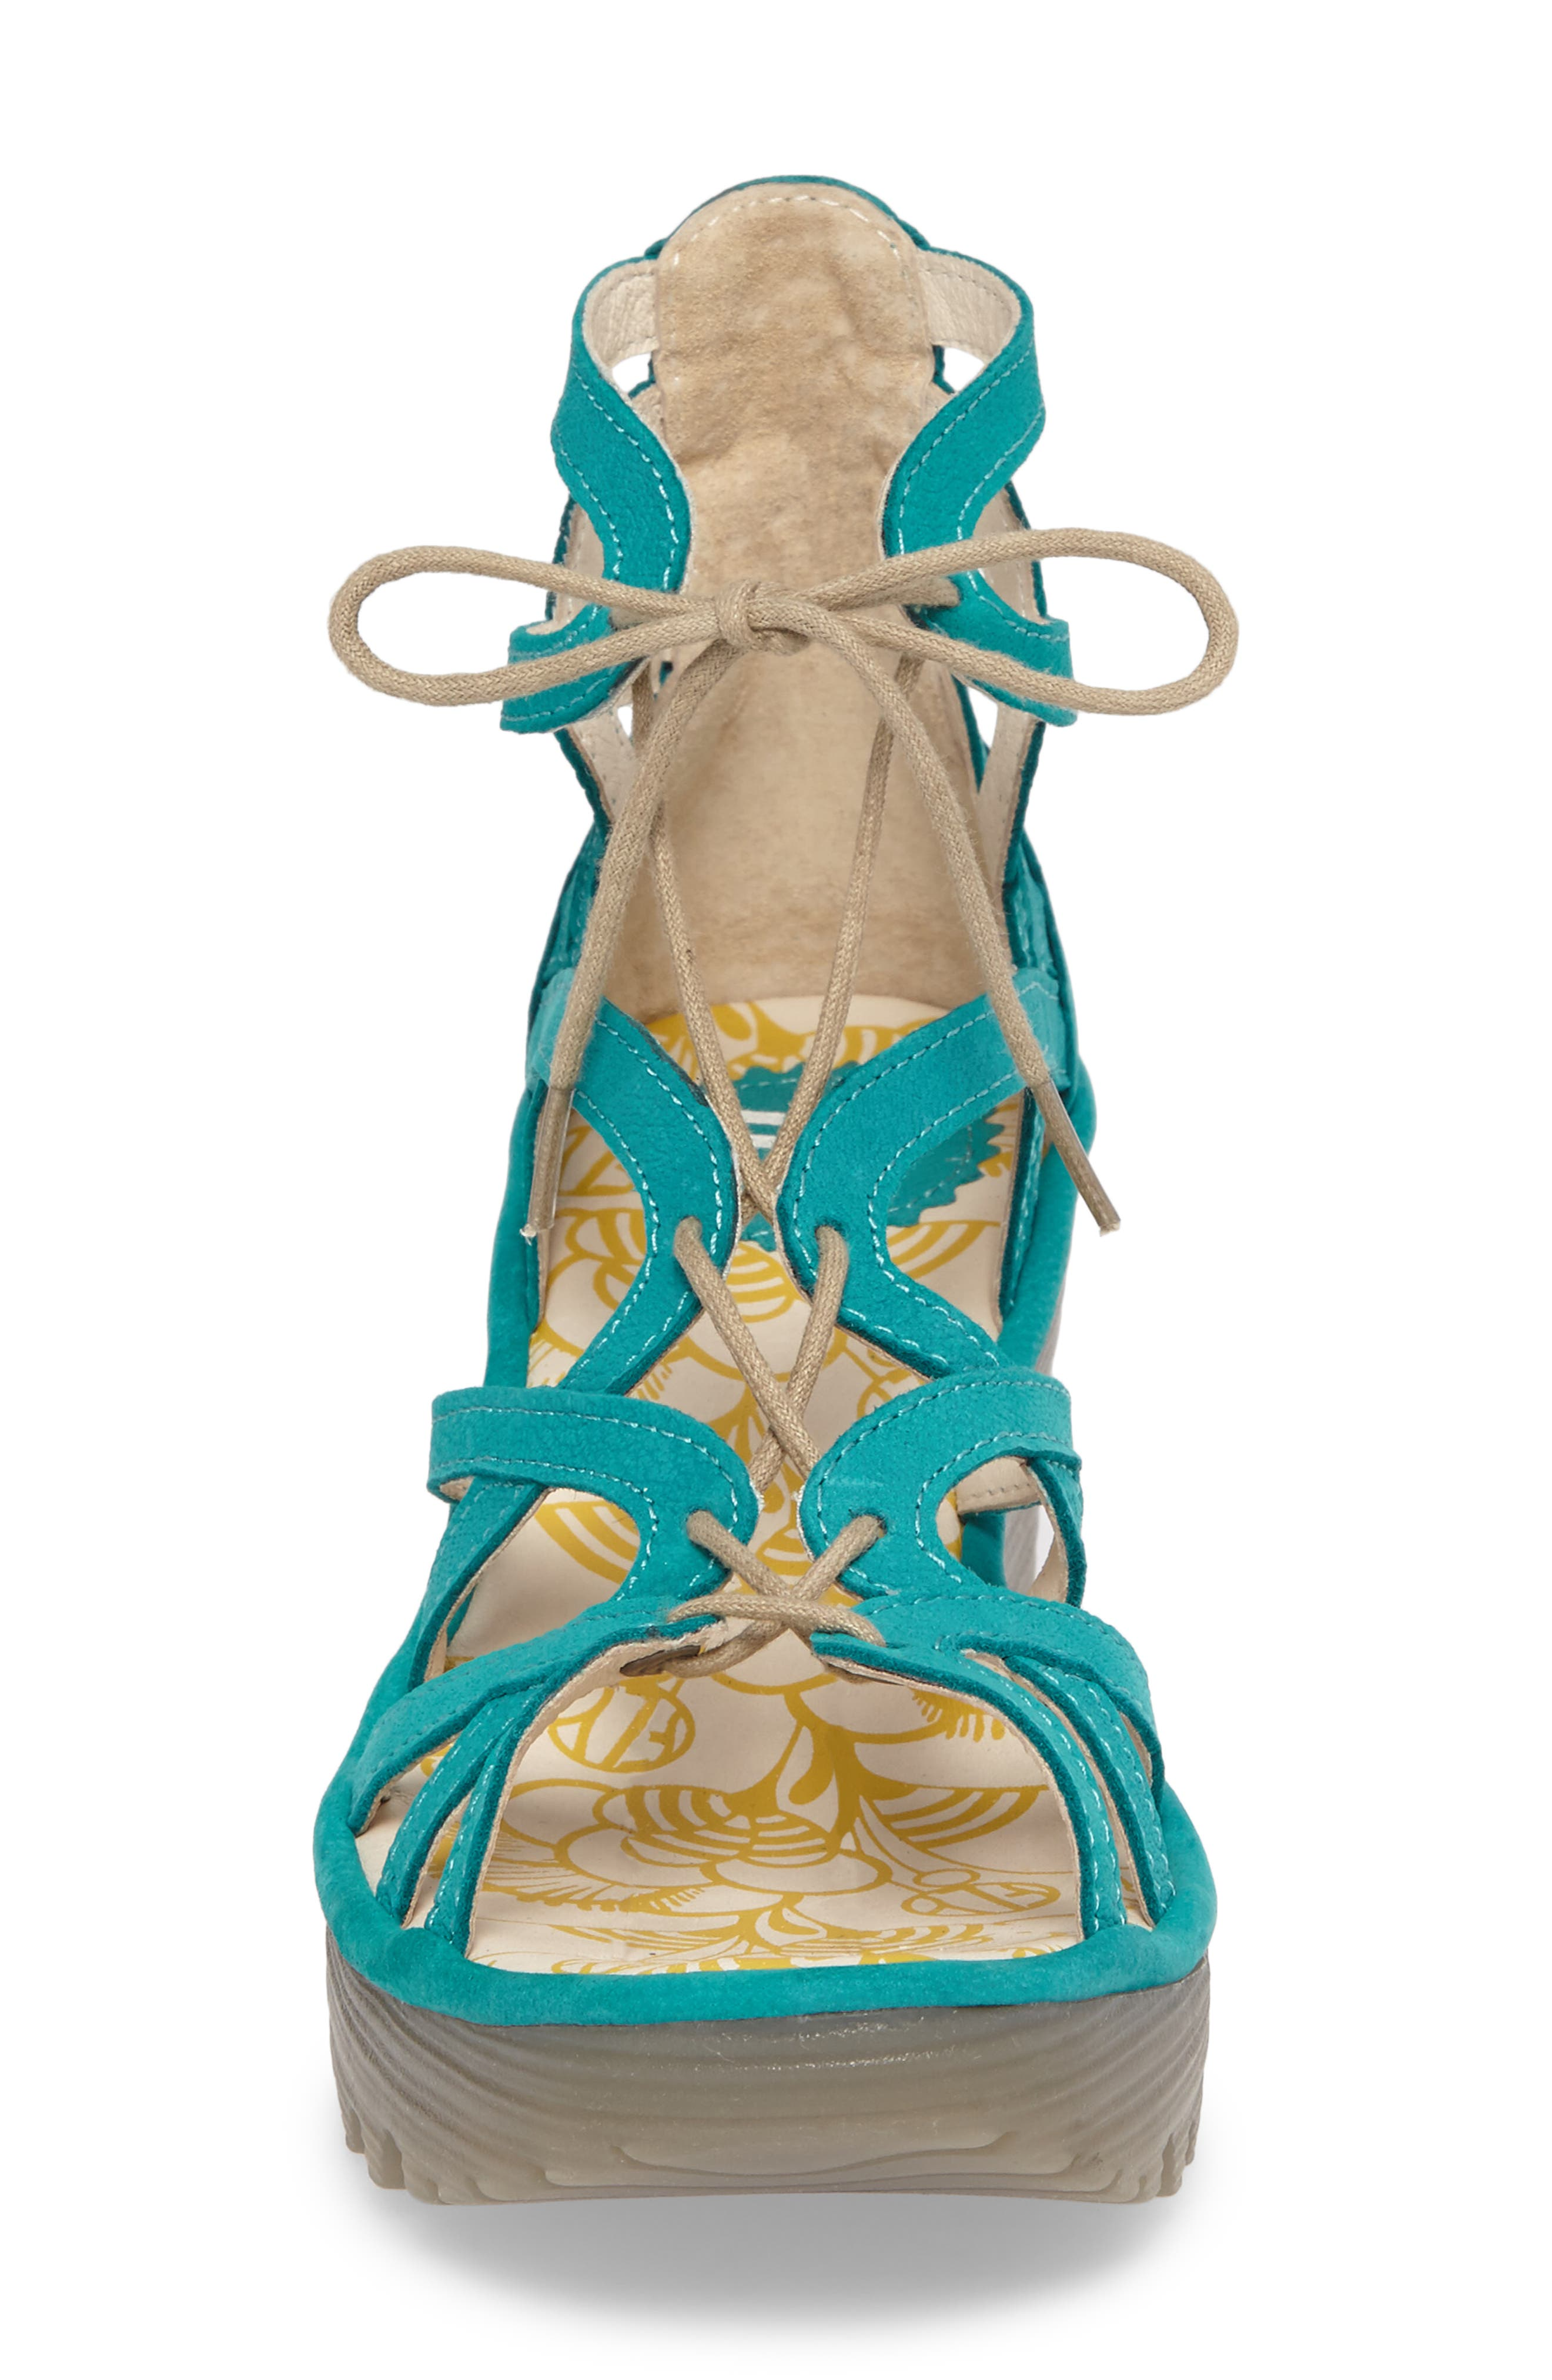 FLY LONDON, 'Yuke' Platform Wedge Sandal, Alternate thumbnail 4, color, VERDIGRIS LEATHER